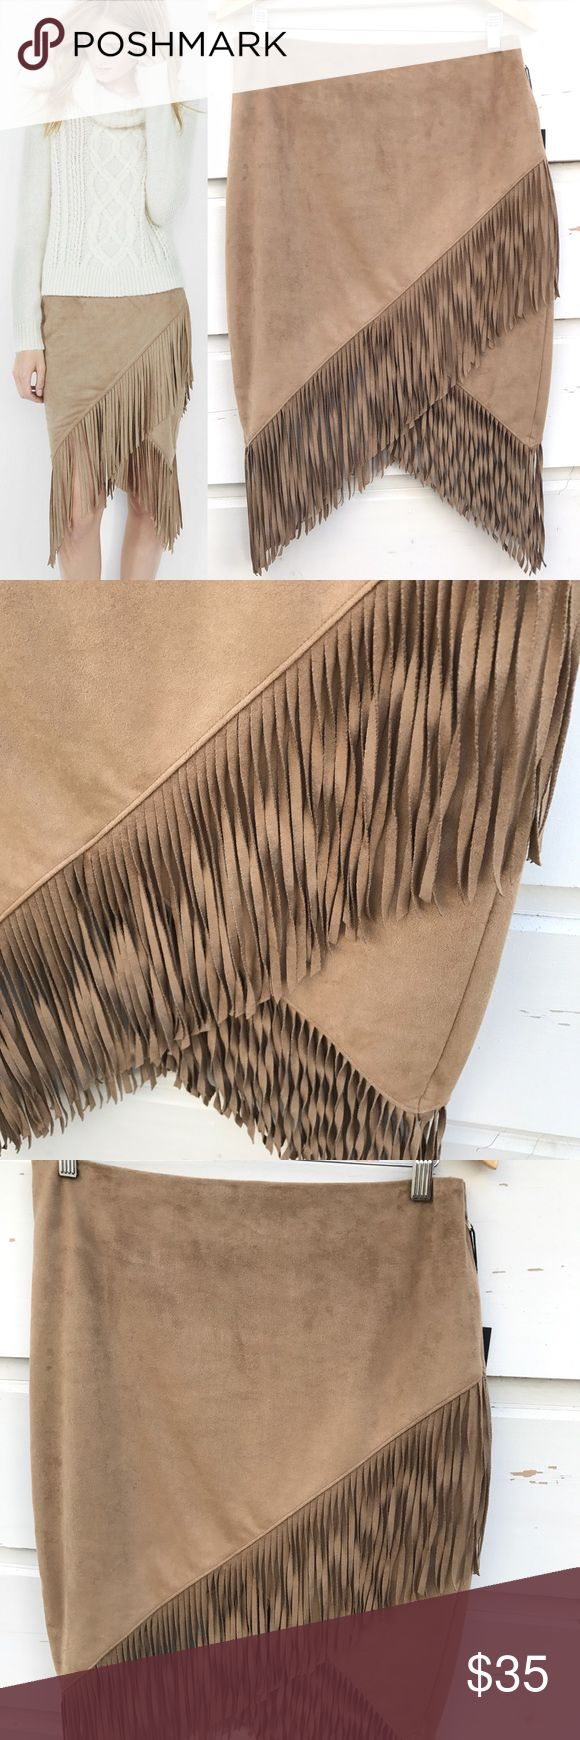 """EXPRESS faux suede fringe skirt EXPRESS faux suede fringe skirt. A supple, faux suede wrap skirt with ample, eight-inch fringe that swishes when you walk. Keep it simple and sexy with a shape-skimming ribbed sweater or go for a fully Southwestern vibe with a cami and denim jacket. High waisted Hidden hook and zipper on side 8"""" fringe embellishment Wrap hem; Lined Polyester/Spandex body; Polyester lining Machine wash New with tags. Best offer. Express Skirts"""